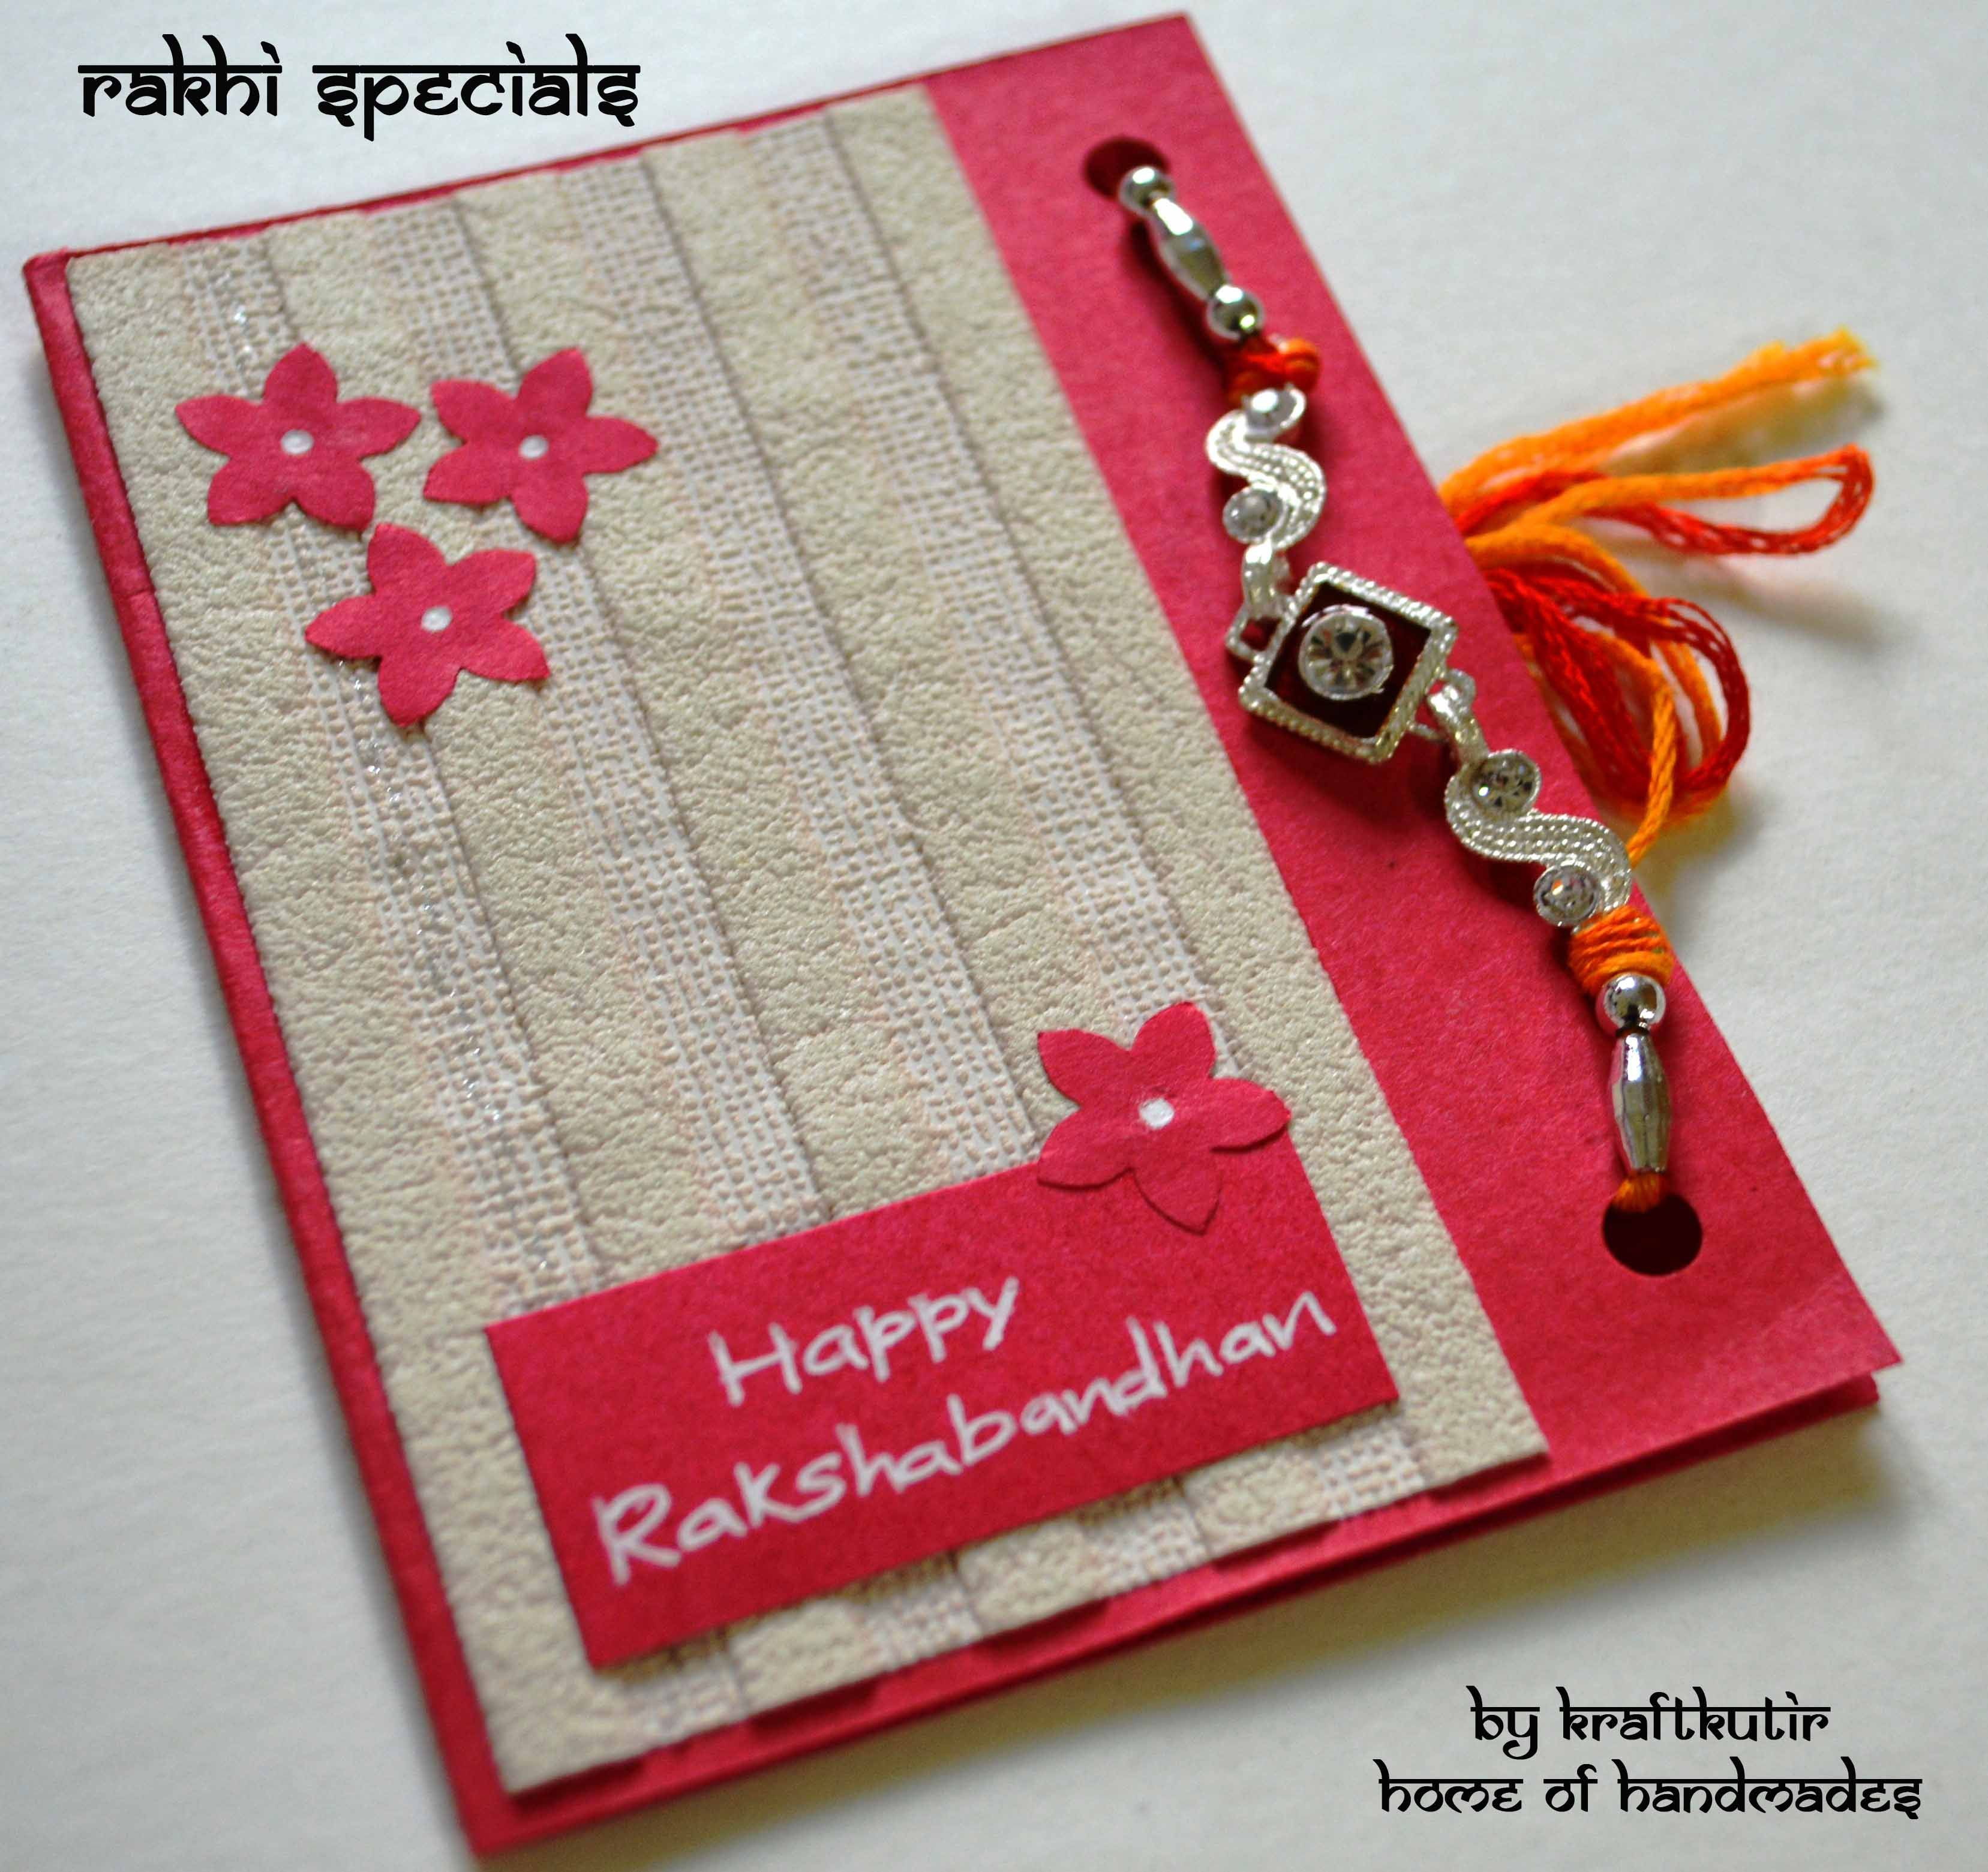 Rakshabandhan Cards With Rakhi :) | Kraftkutir's Handmade Products - Free Online Printable Rakhi Cards